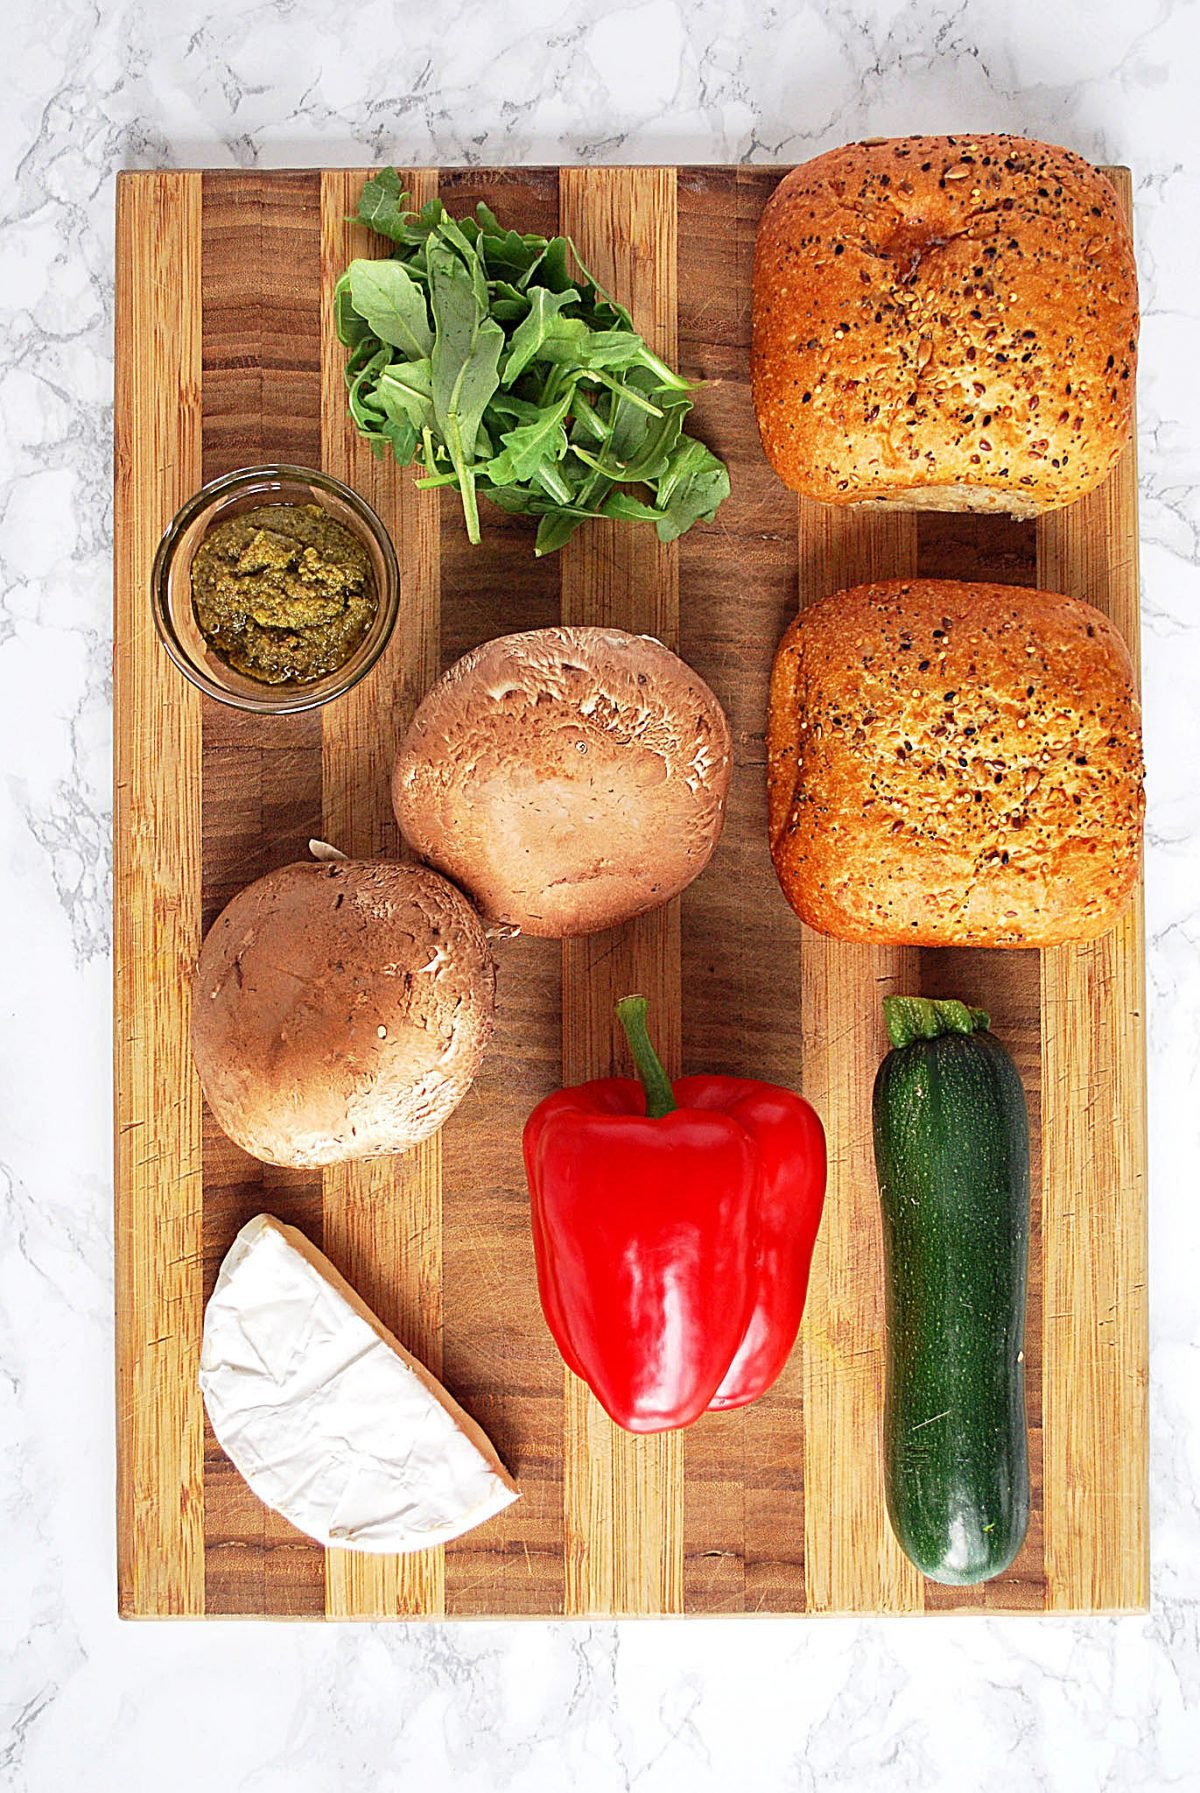 A cutting board with roasted vegetable sandwich ingredients on it.